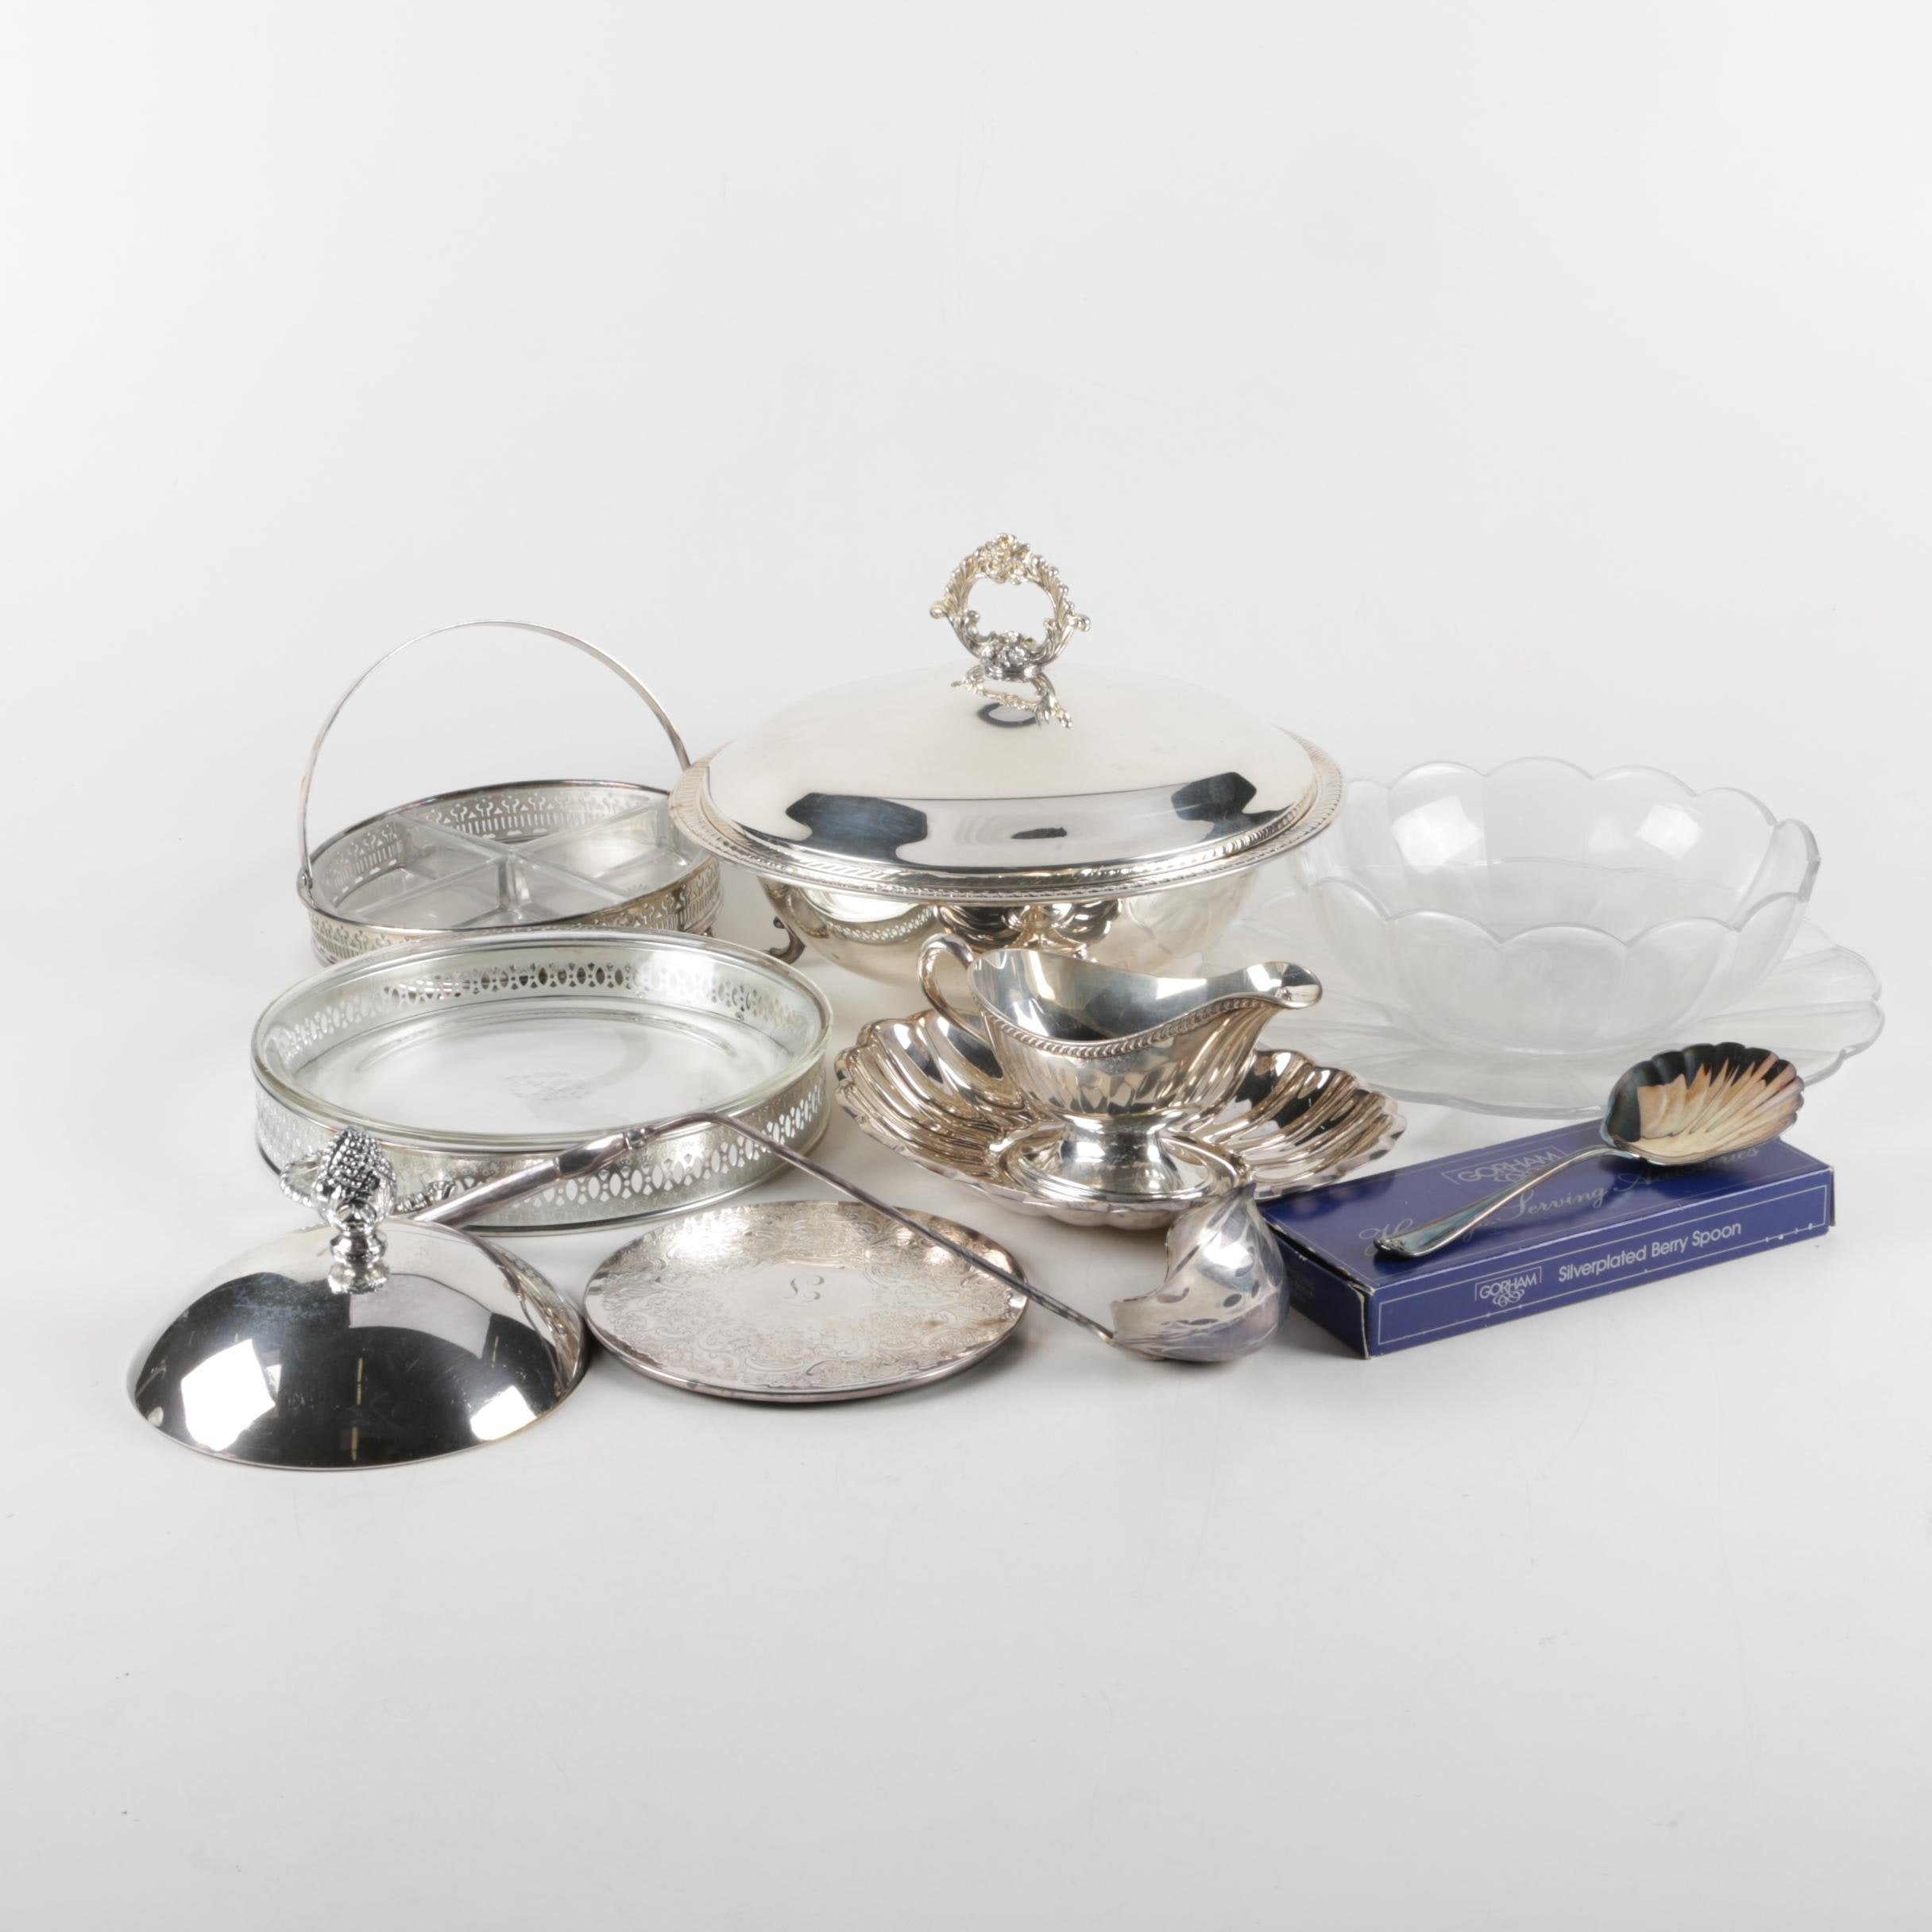 Reed & Barton Scalloped Silver Plate Bowl with Assorted Silver Plate and Glass